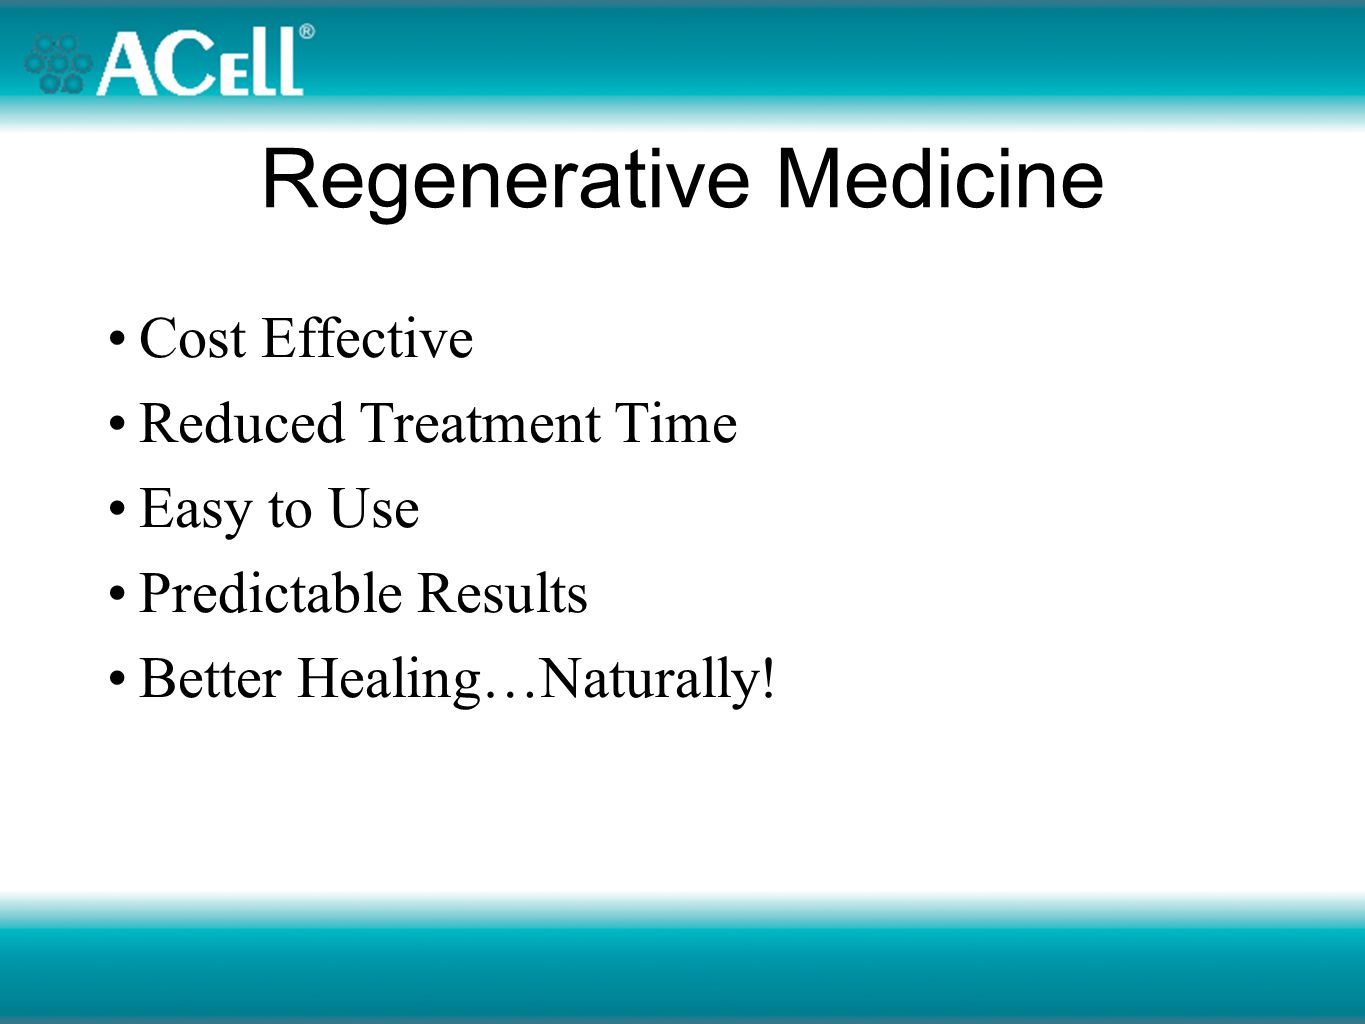 What are the ideal Regenerative Medicine principles? - ppt download